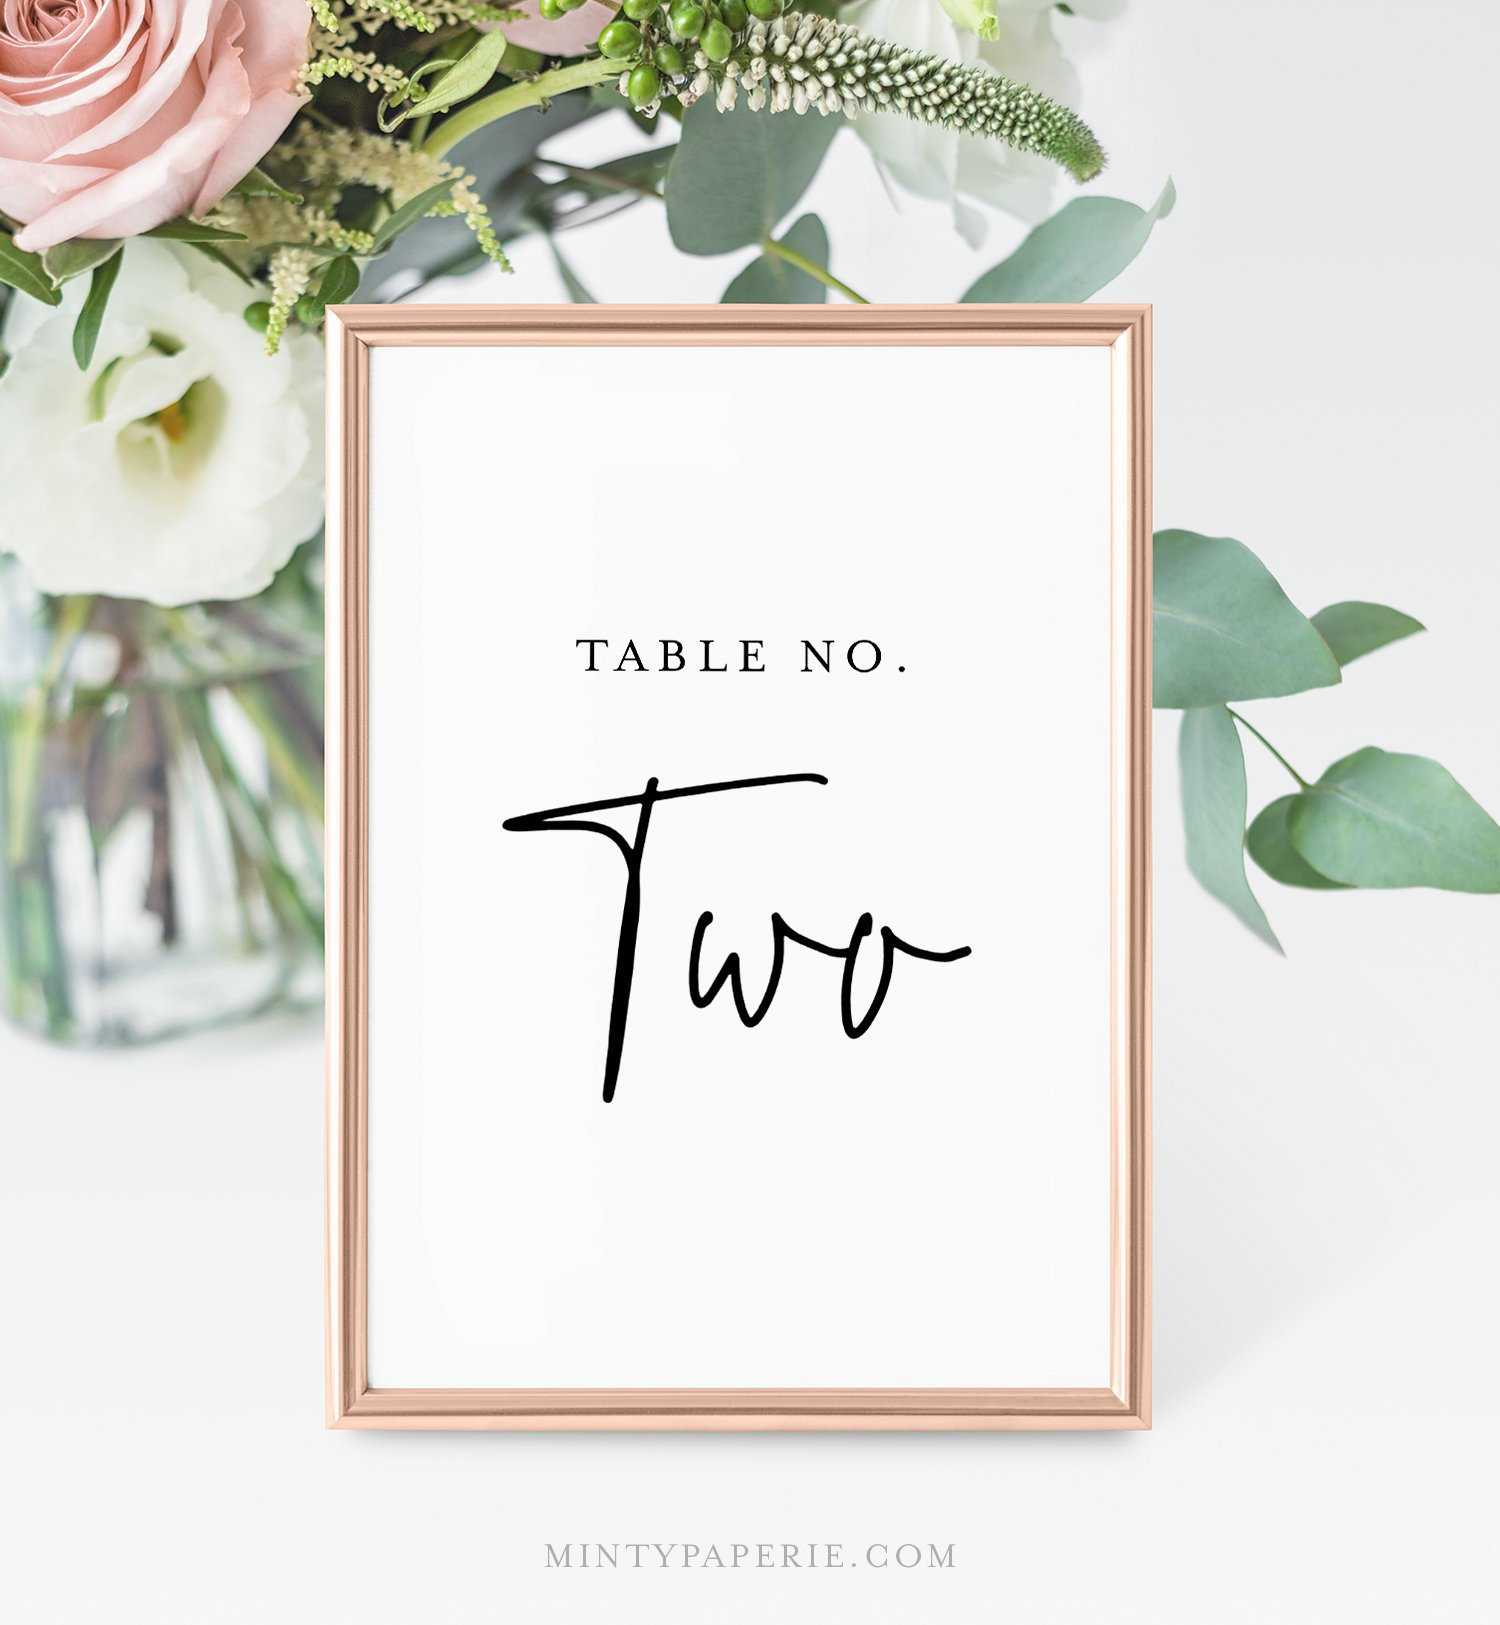 Printable Table Number Cards, Minimalist Wedding Table Throughout Table Number Cards Template